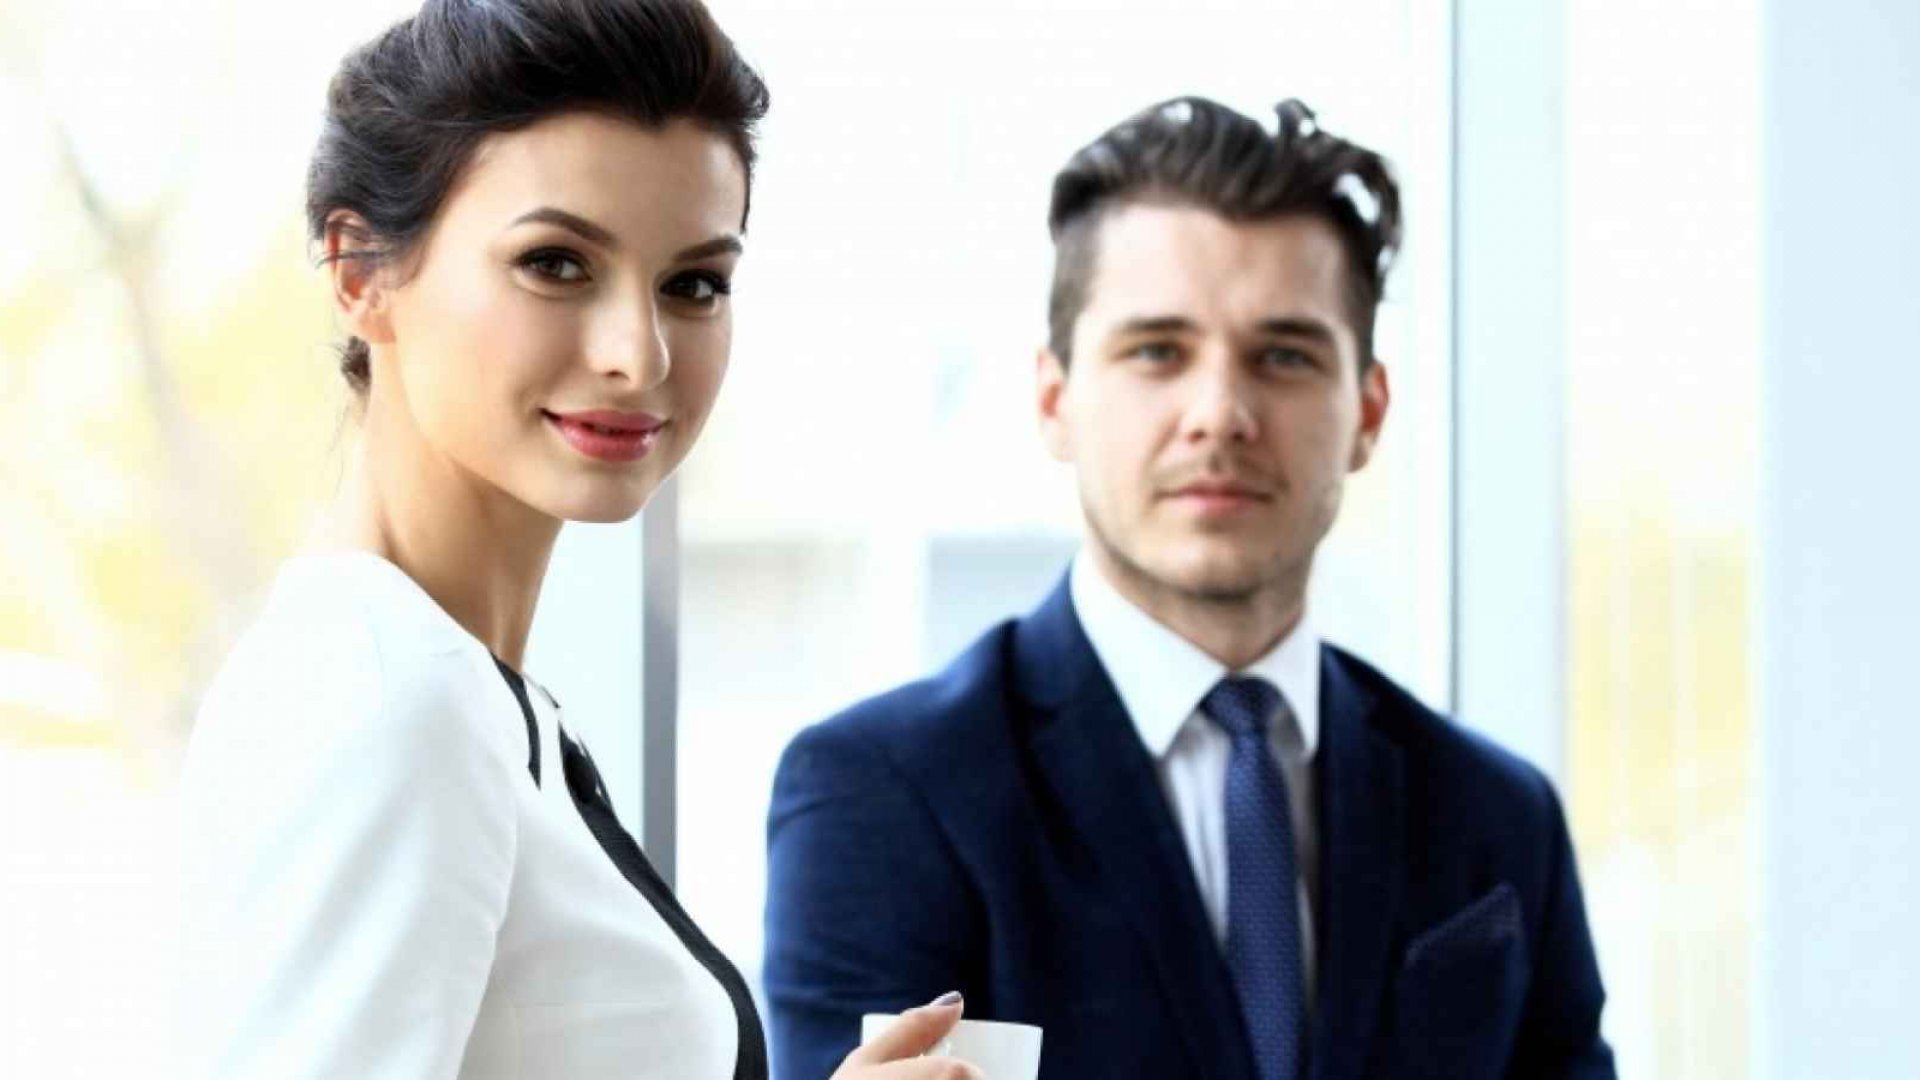 7 Habits for Projecting Confidence Instead of Arrogance